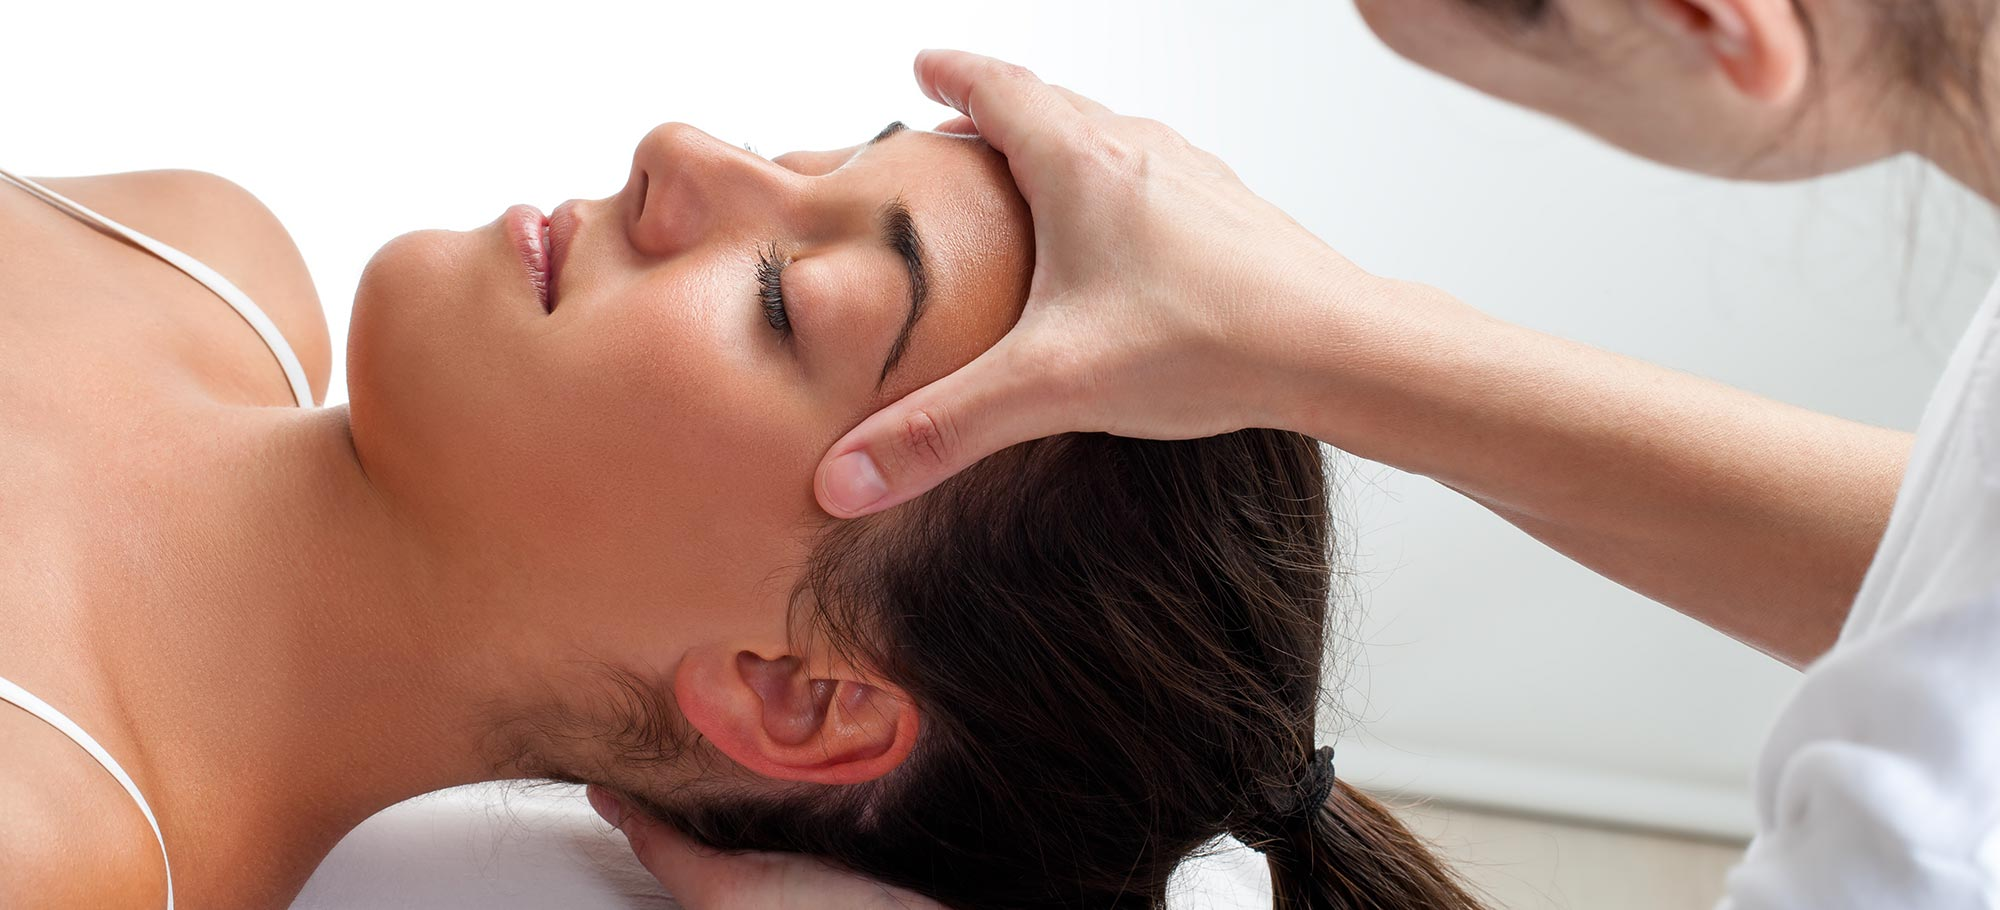 Massage Bheandlung in der Physiotherapie Praxis Wannsee